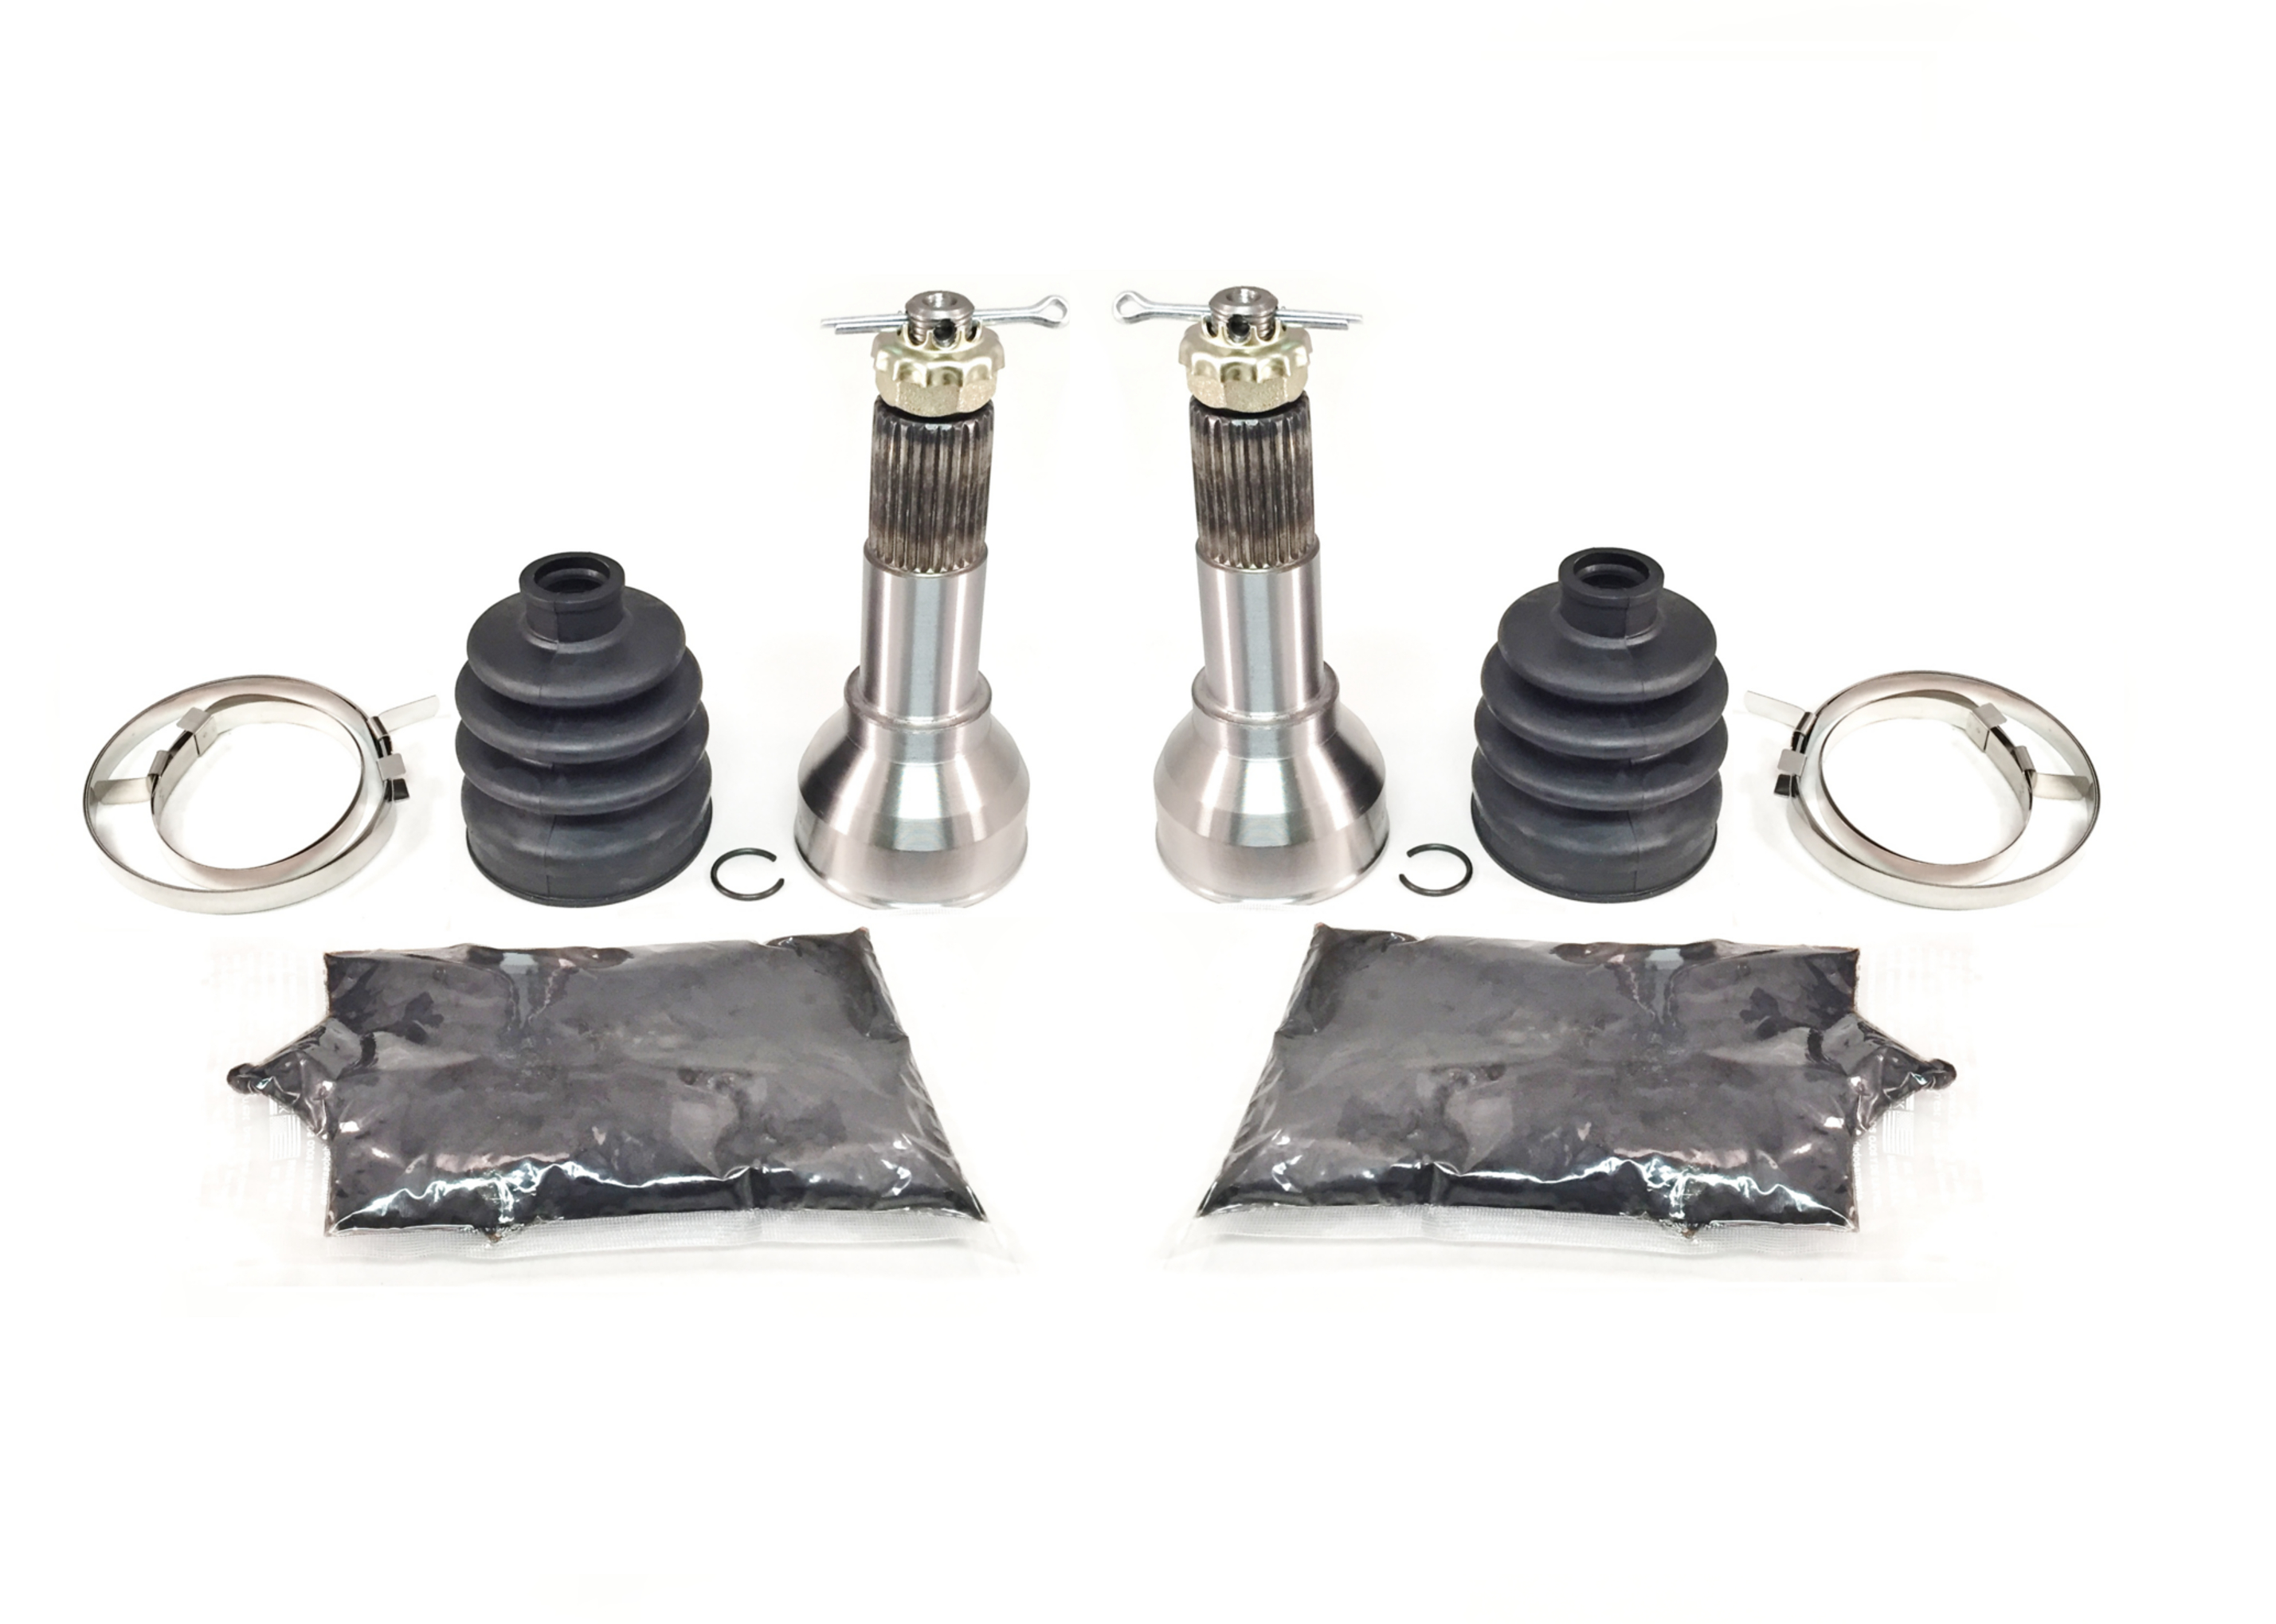 1998-2001 Polaris Sportsman 500 ATV Pair of Front Axle Outer CV Joint Kits